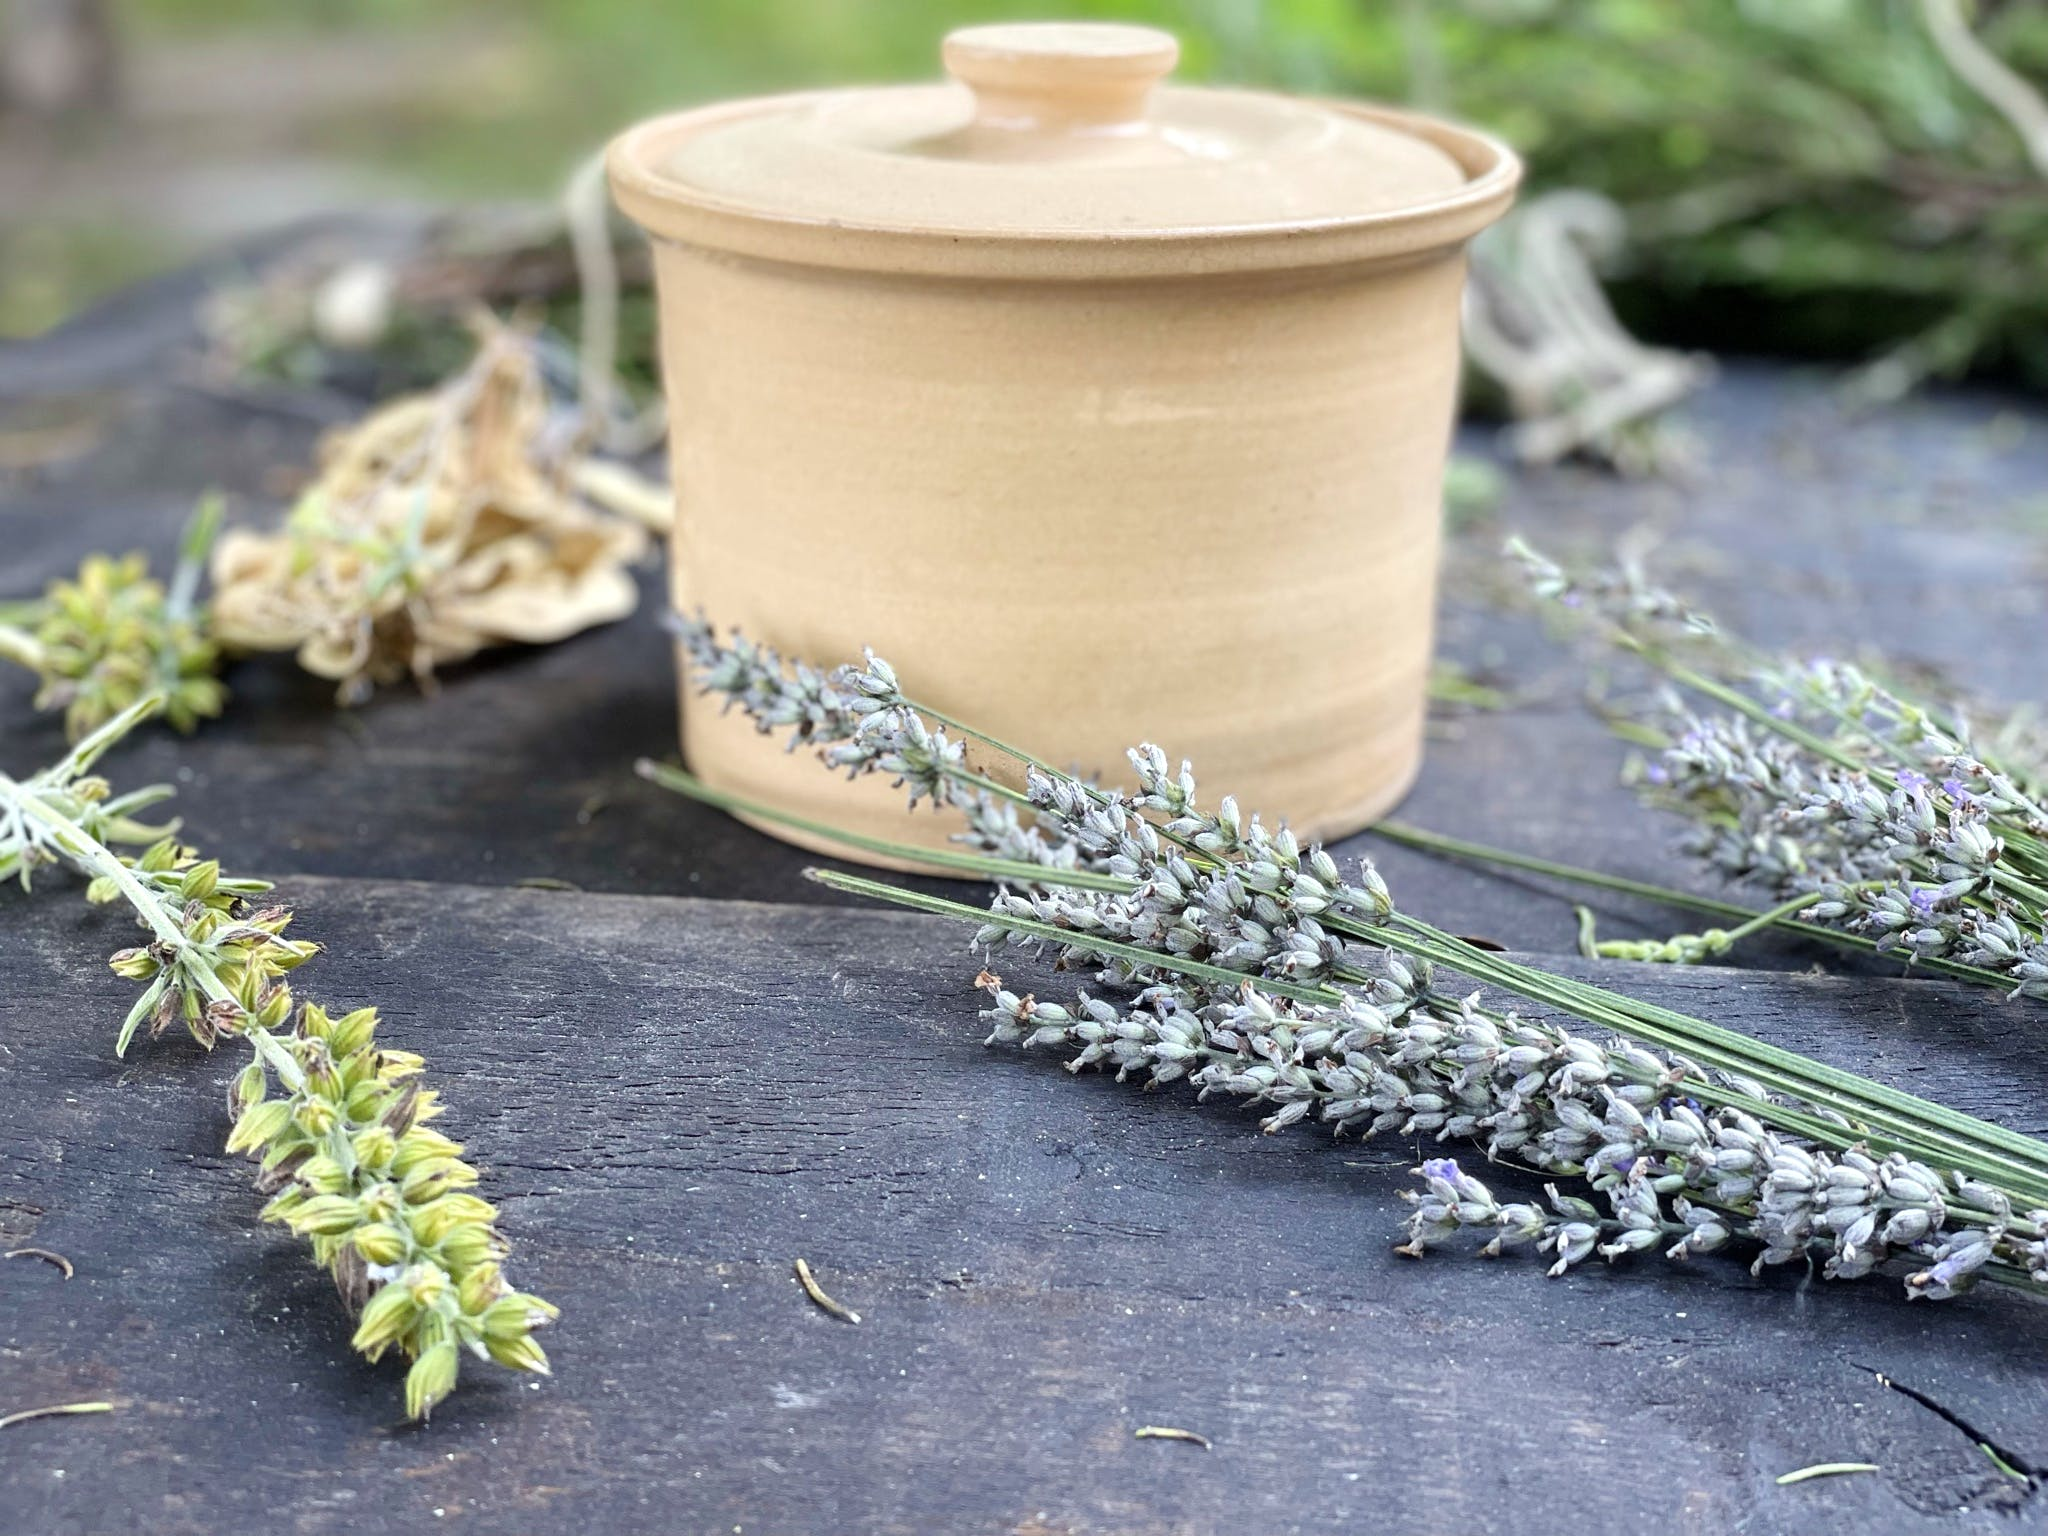 Fresh cut herbs are scattered on a wooden table